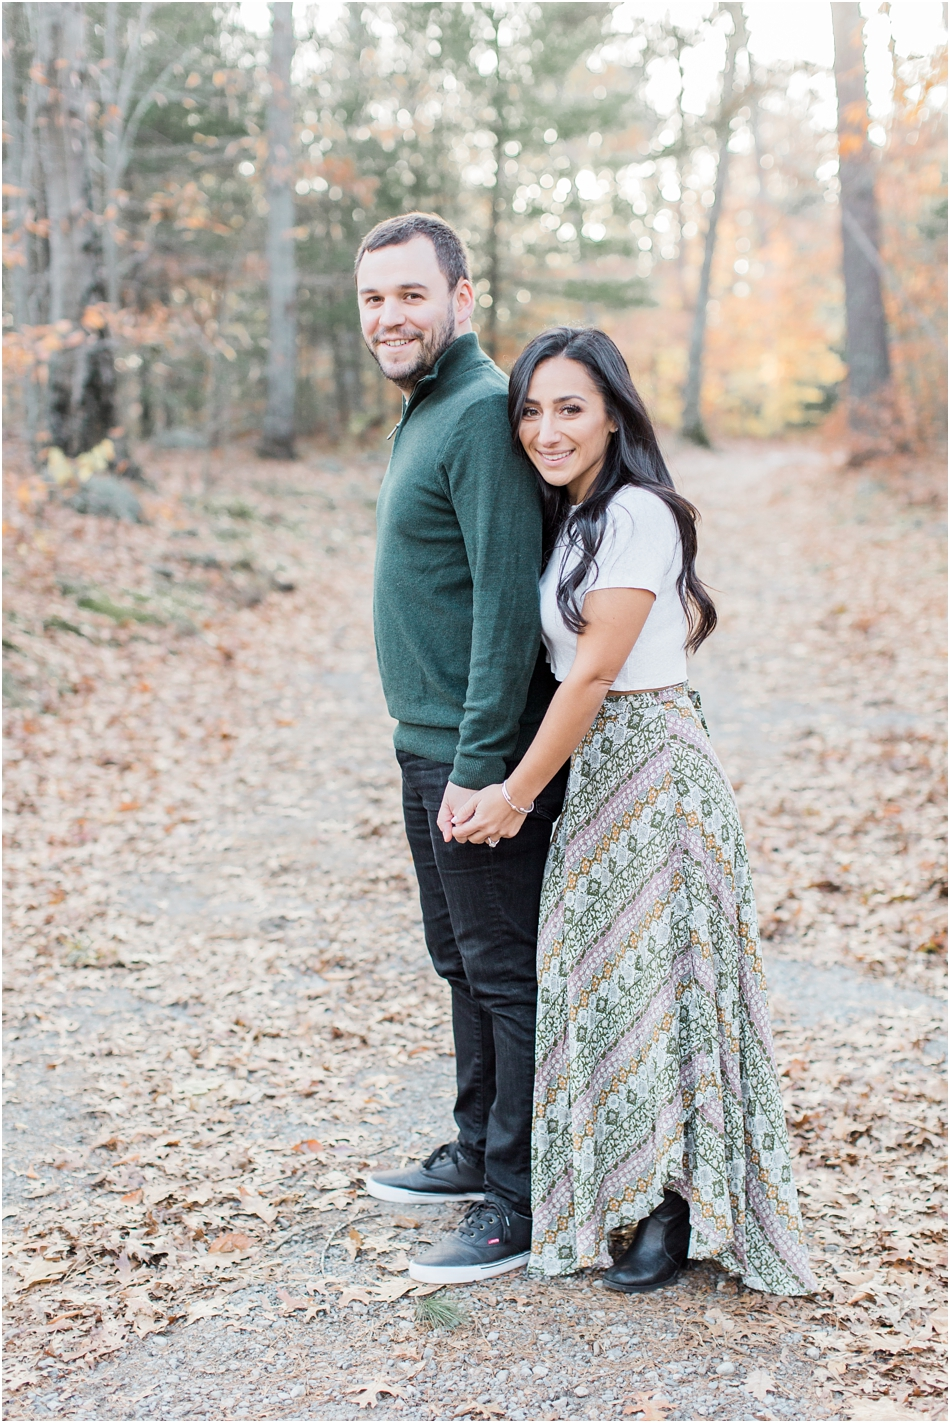 borderland_state_park_engagement_fall_michelle_matt_cape_cod_boston_new_england_wedding_photographer_Meredith_Jane_Photography_photo_0266.jpg